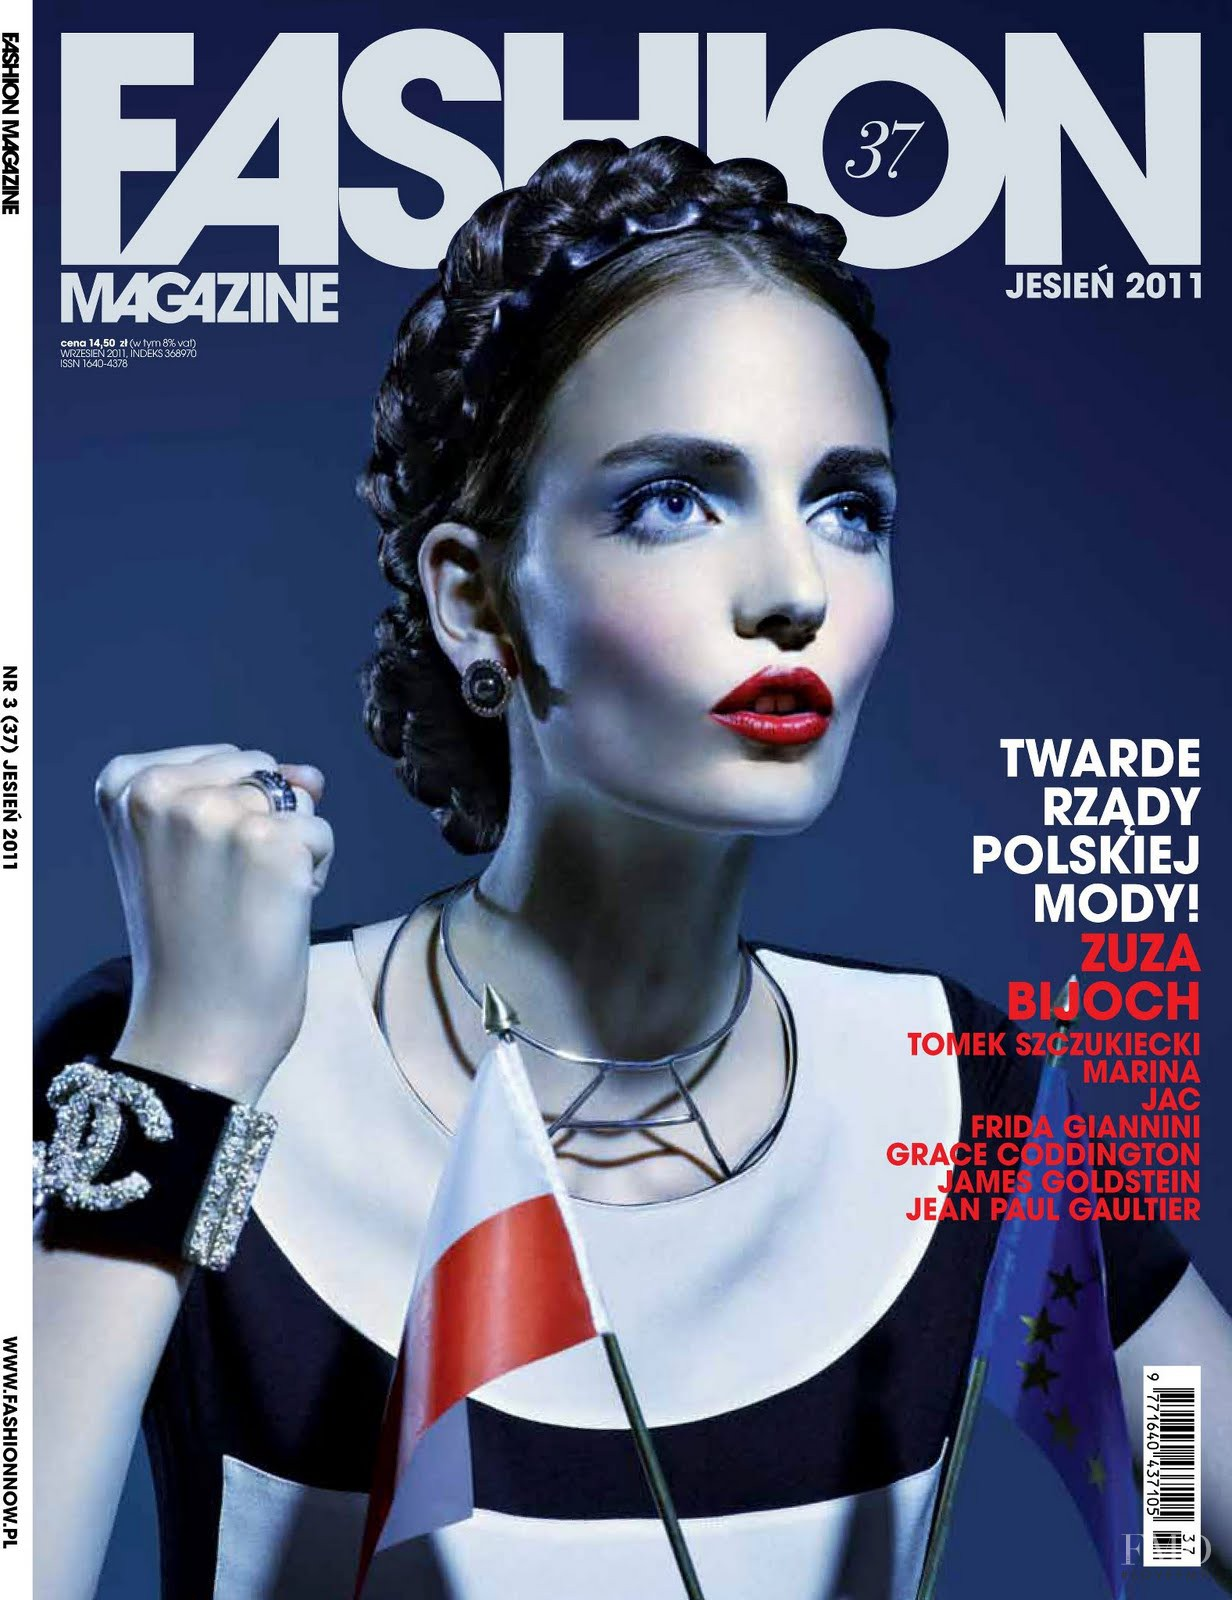 Fashion Magazines Nyc: Cover Of Fashion Magazine With Zuzanna Bijoch, September